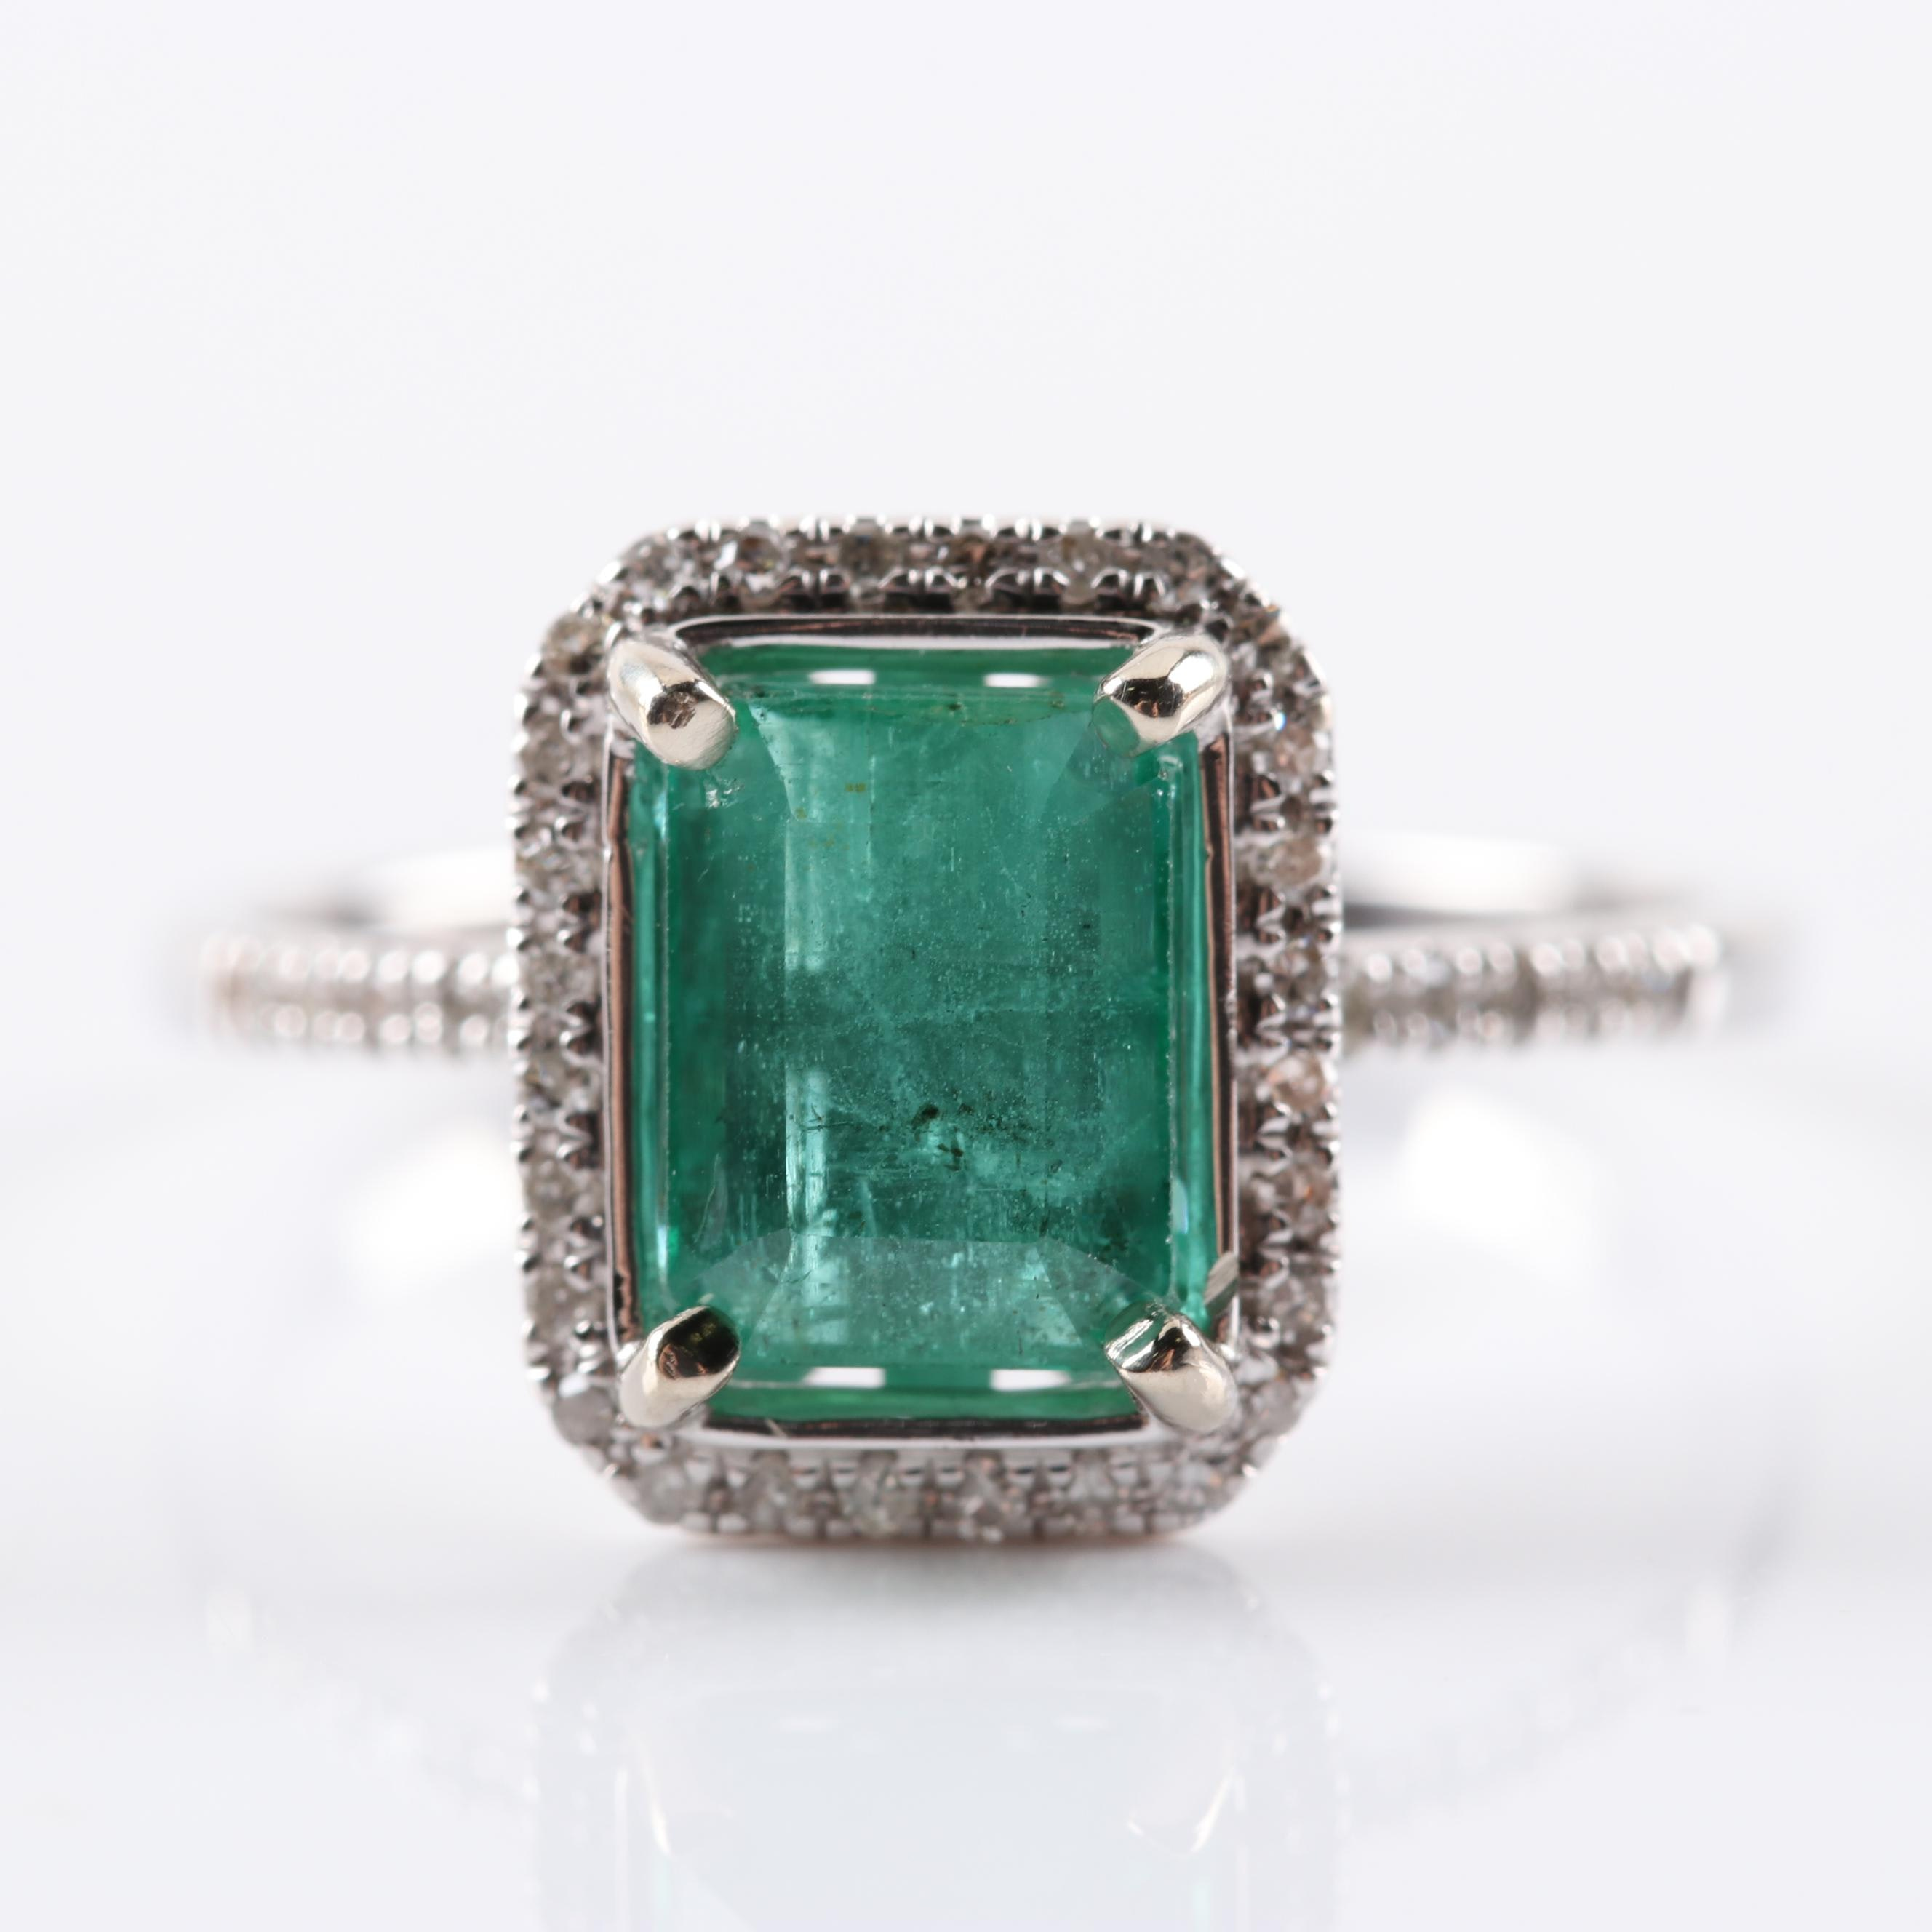 14K White Gold 1.70 CT Emerald and Diamond Ring